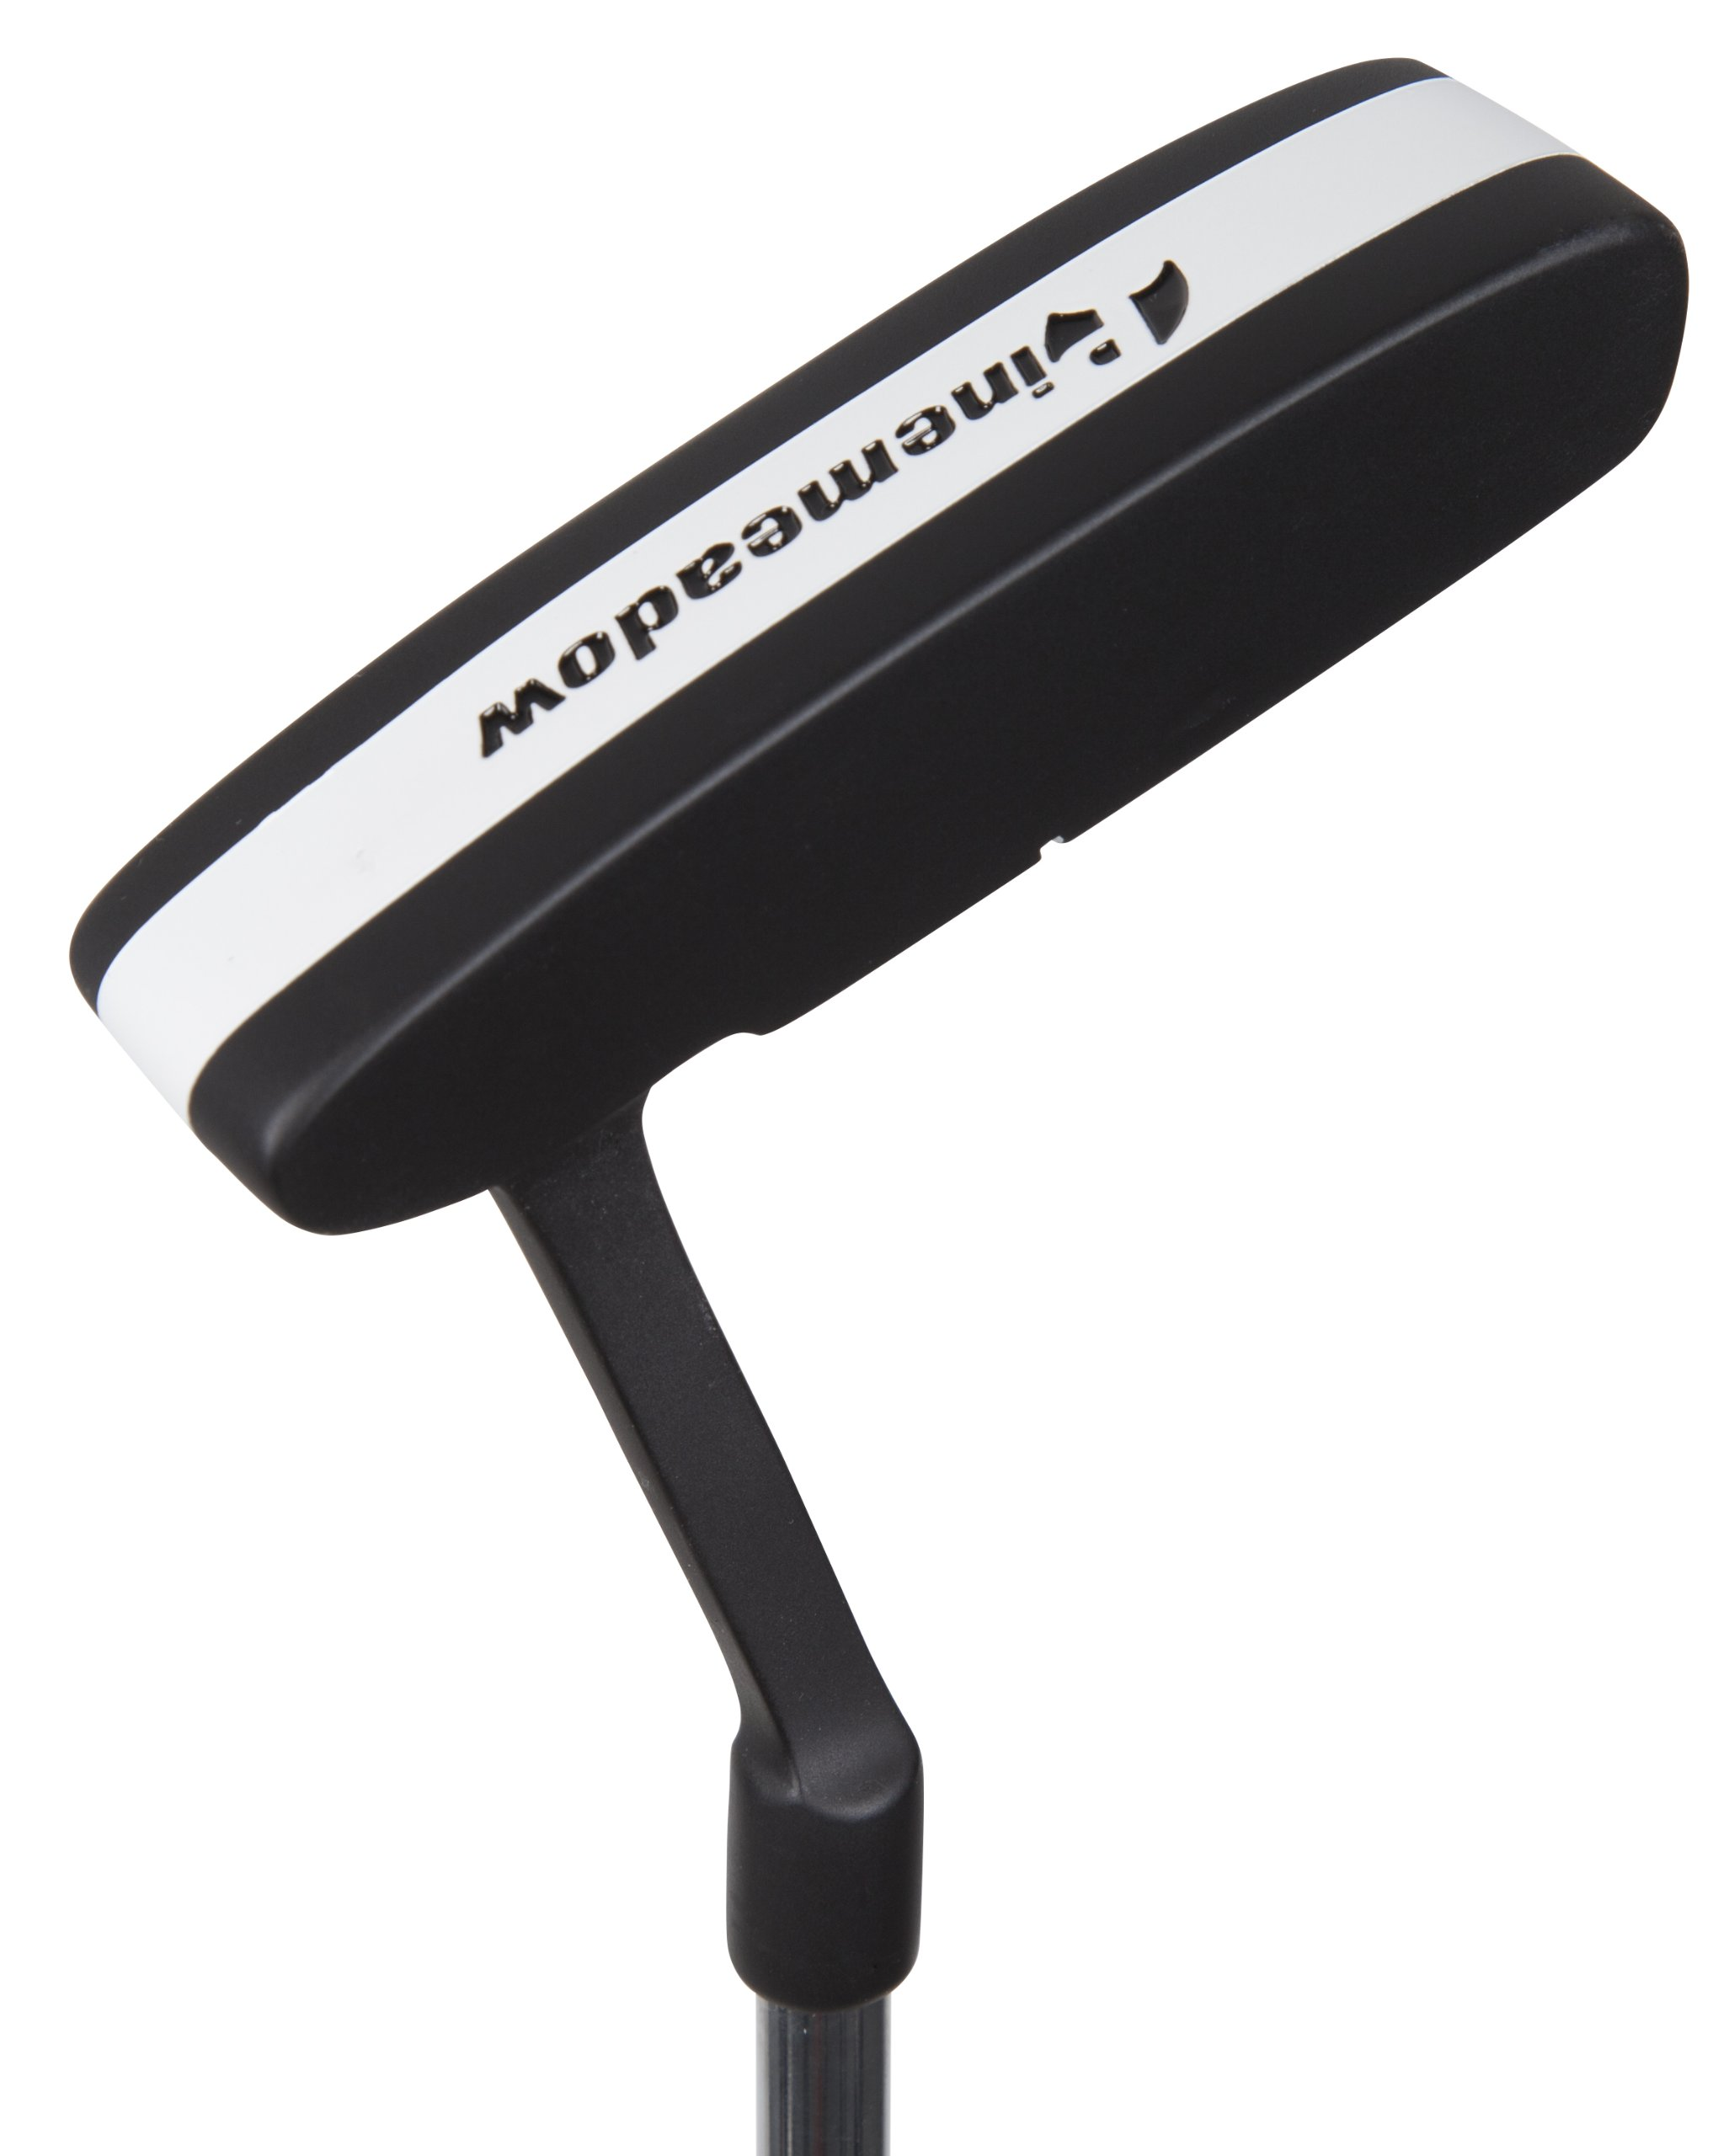 Pinemeadow Golf Site 1 Putter, Right Hand, 34-Inch by Pinemeadow Golf (Image #2)